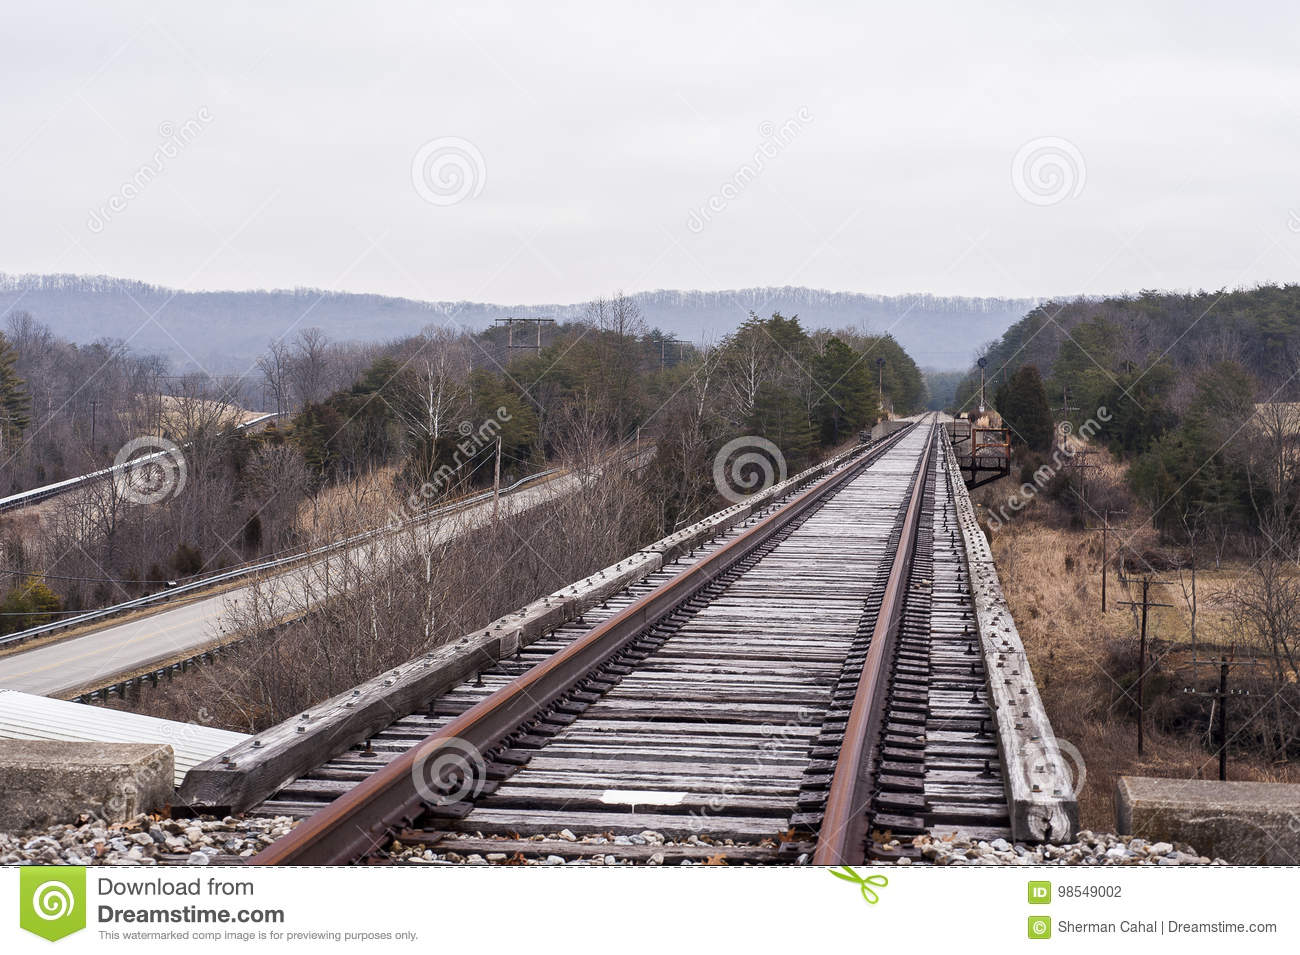 Abandoned Railroad - Track View On Cloudy AfternoonBridge Stock